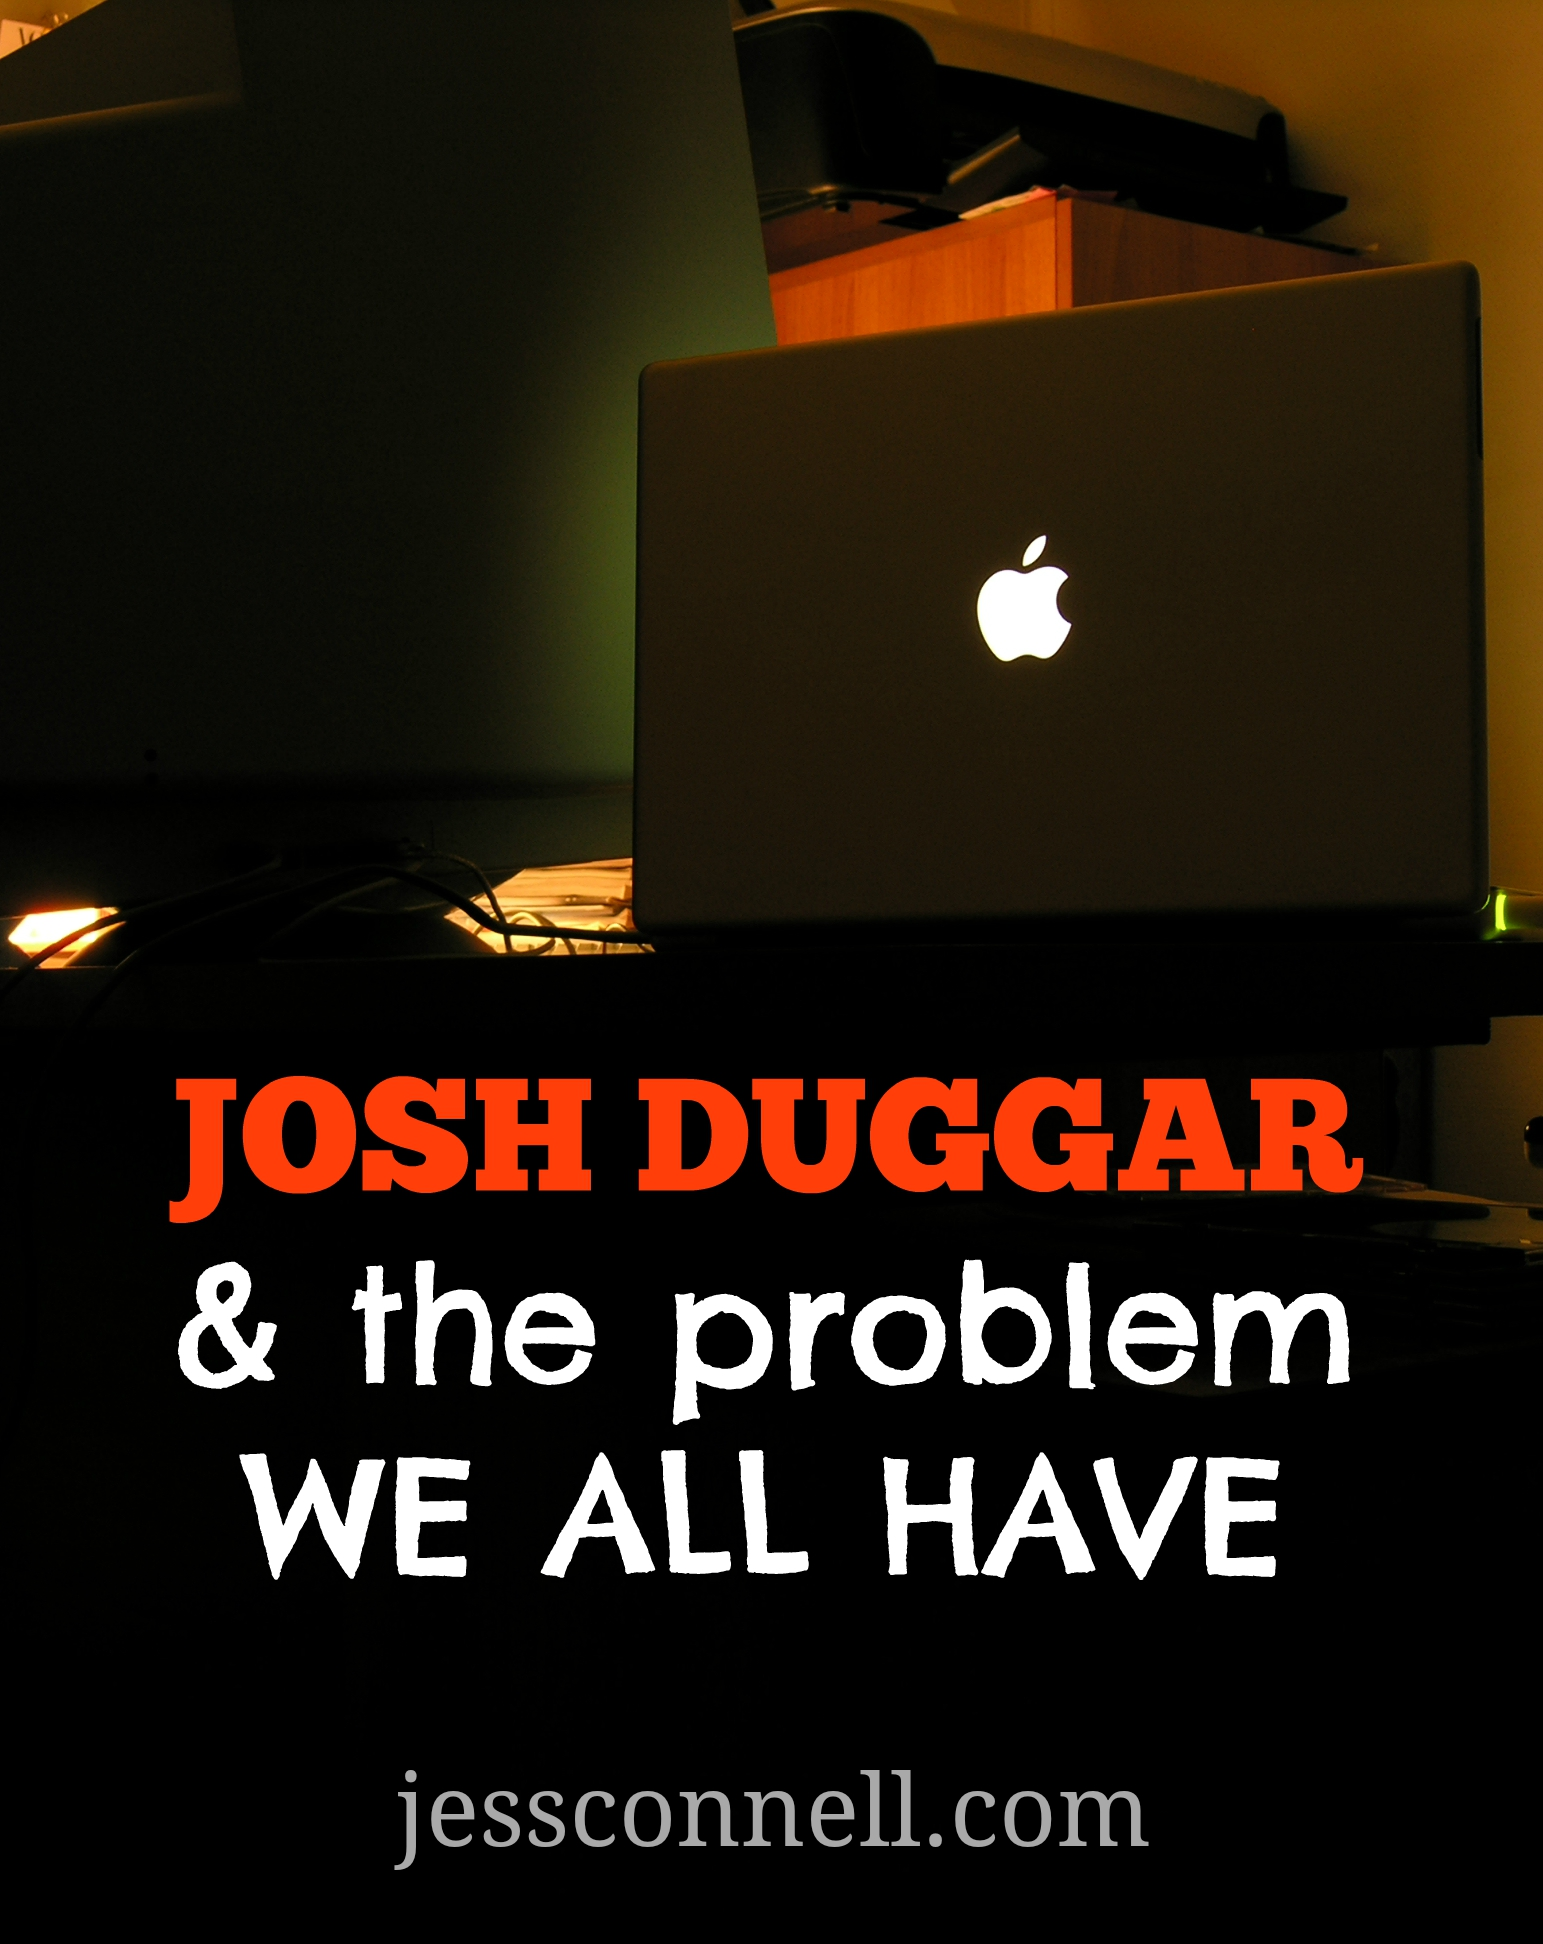 Josh Duggar & the problem we all have // jessconnell.com